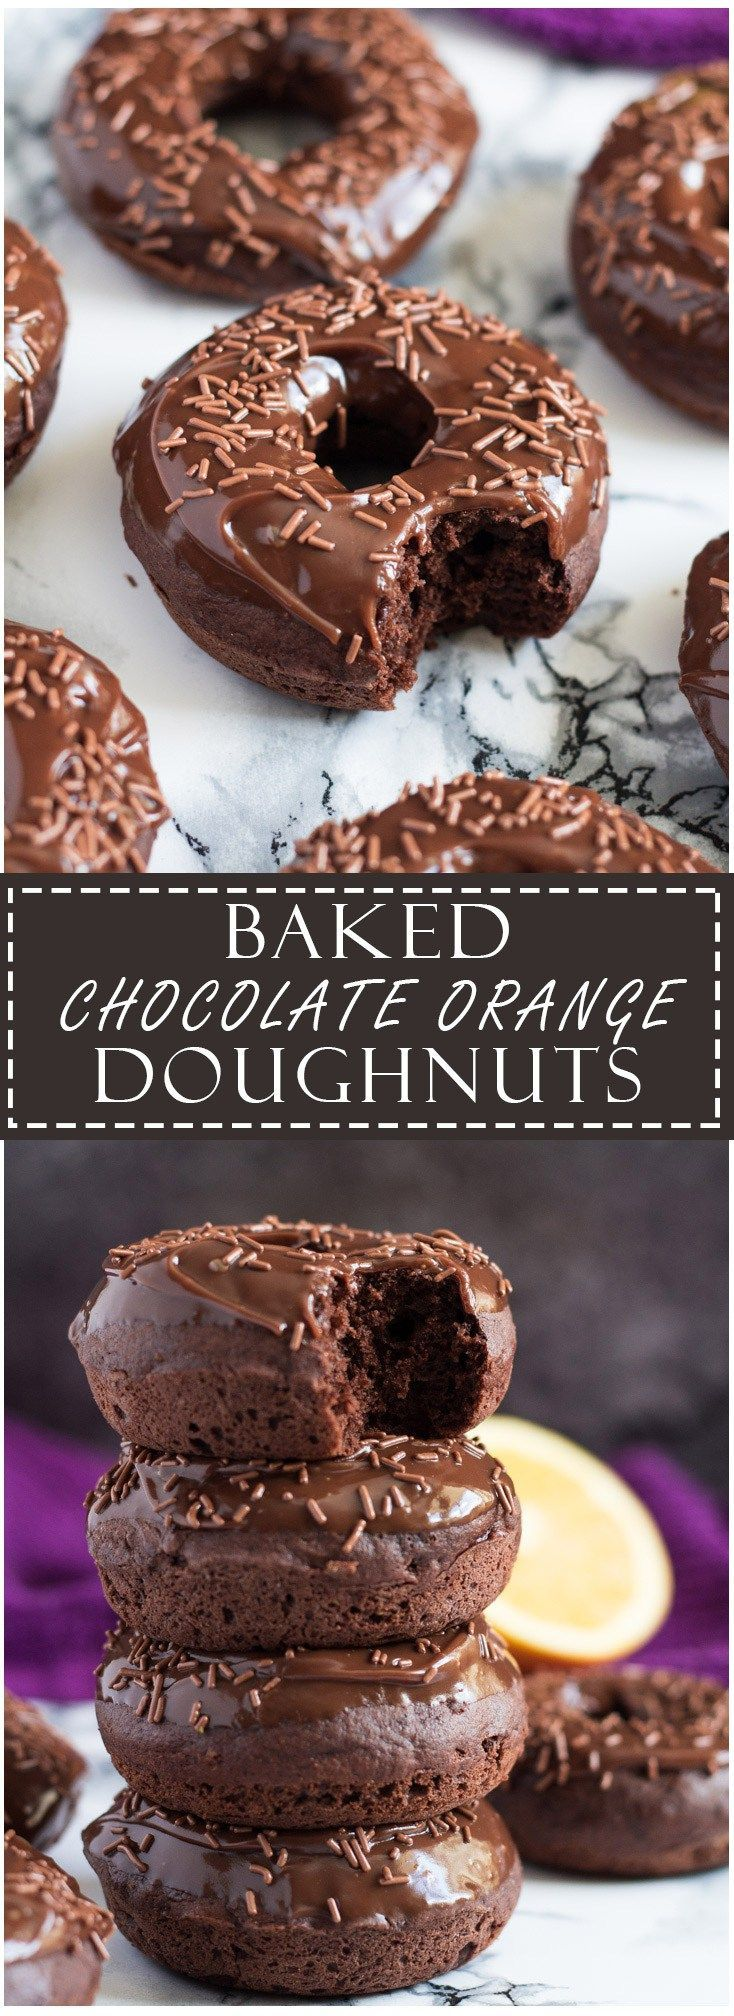 Re-Pin By @siliconem -  Baked Double Chocolate Orange Doughnuts | Marsha's Baking Addiction